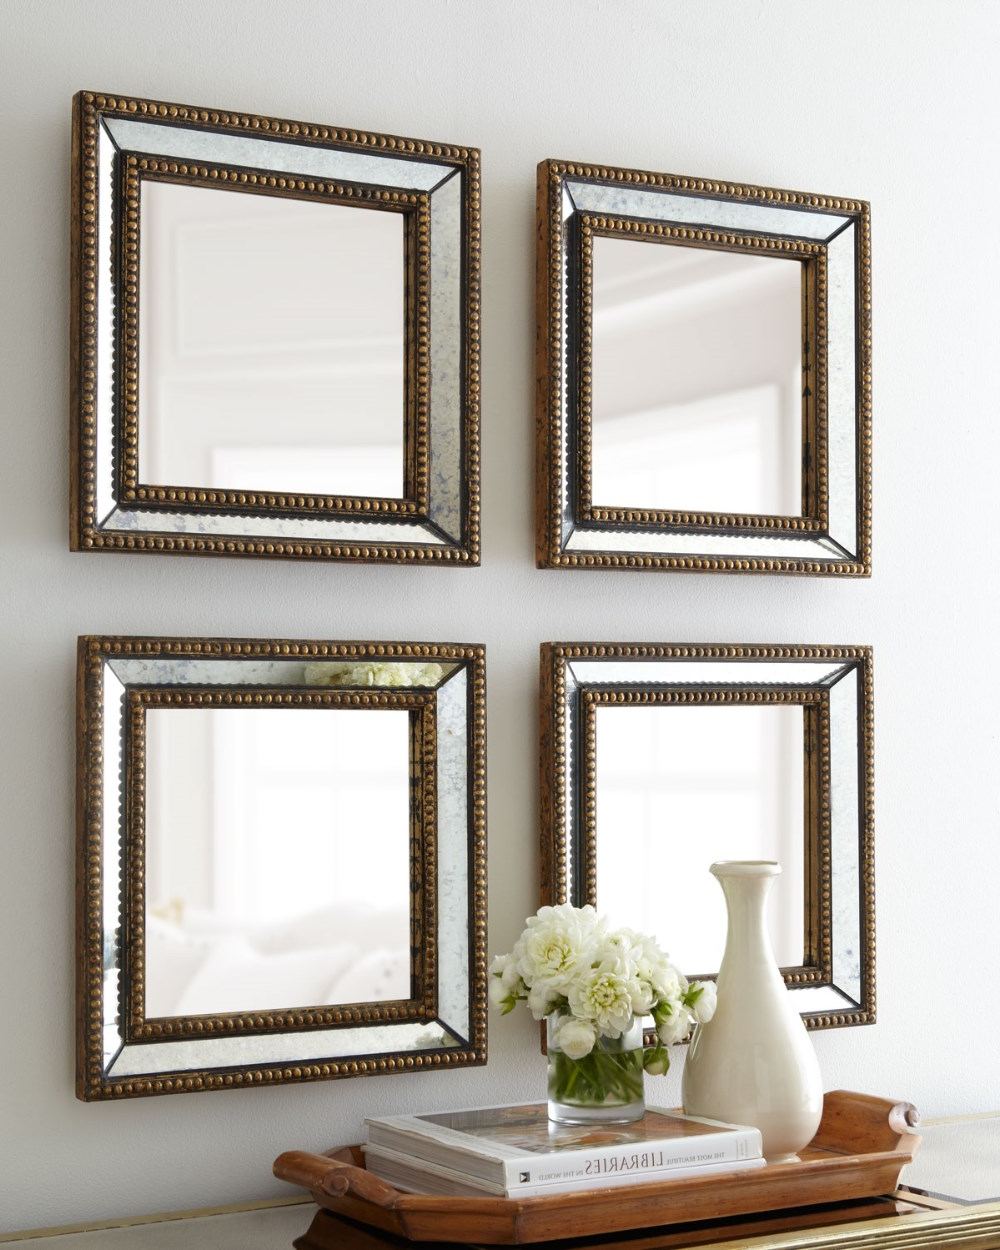 Mirror: Charming Wall Mirrorhobby Lobby Mirrors — Anarmammadov With Regard To Latest Hobby Lobby Wall Mirrors (Gallery 14 of 20)